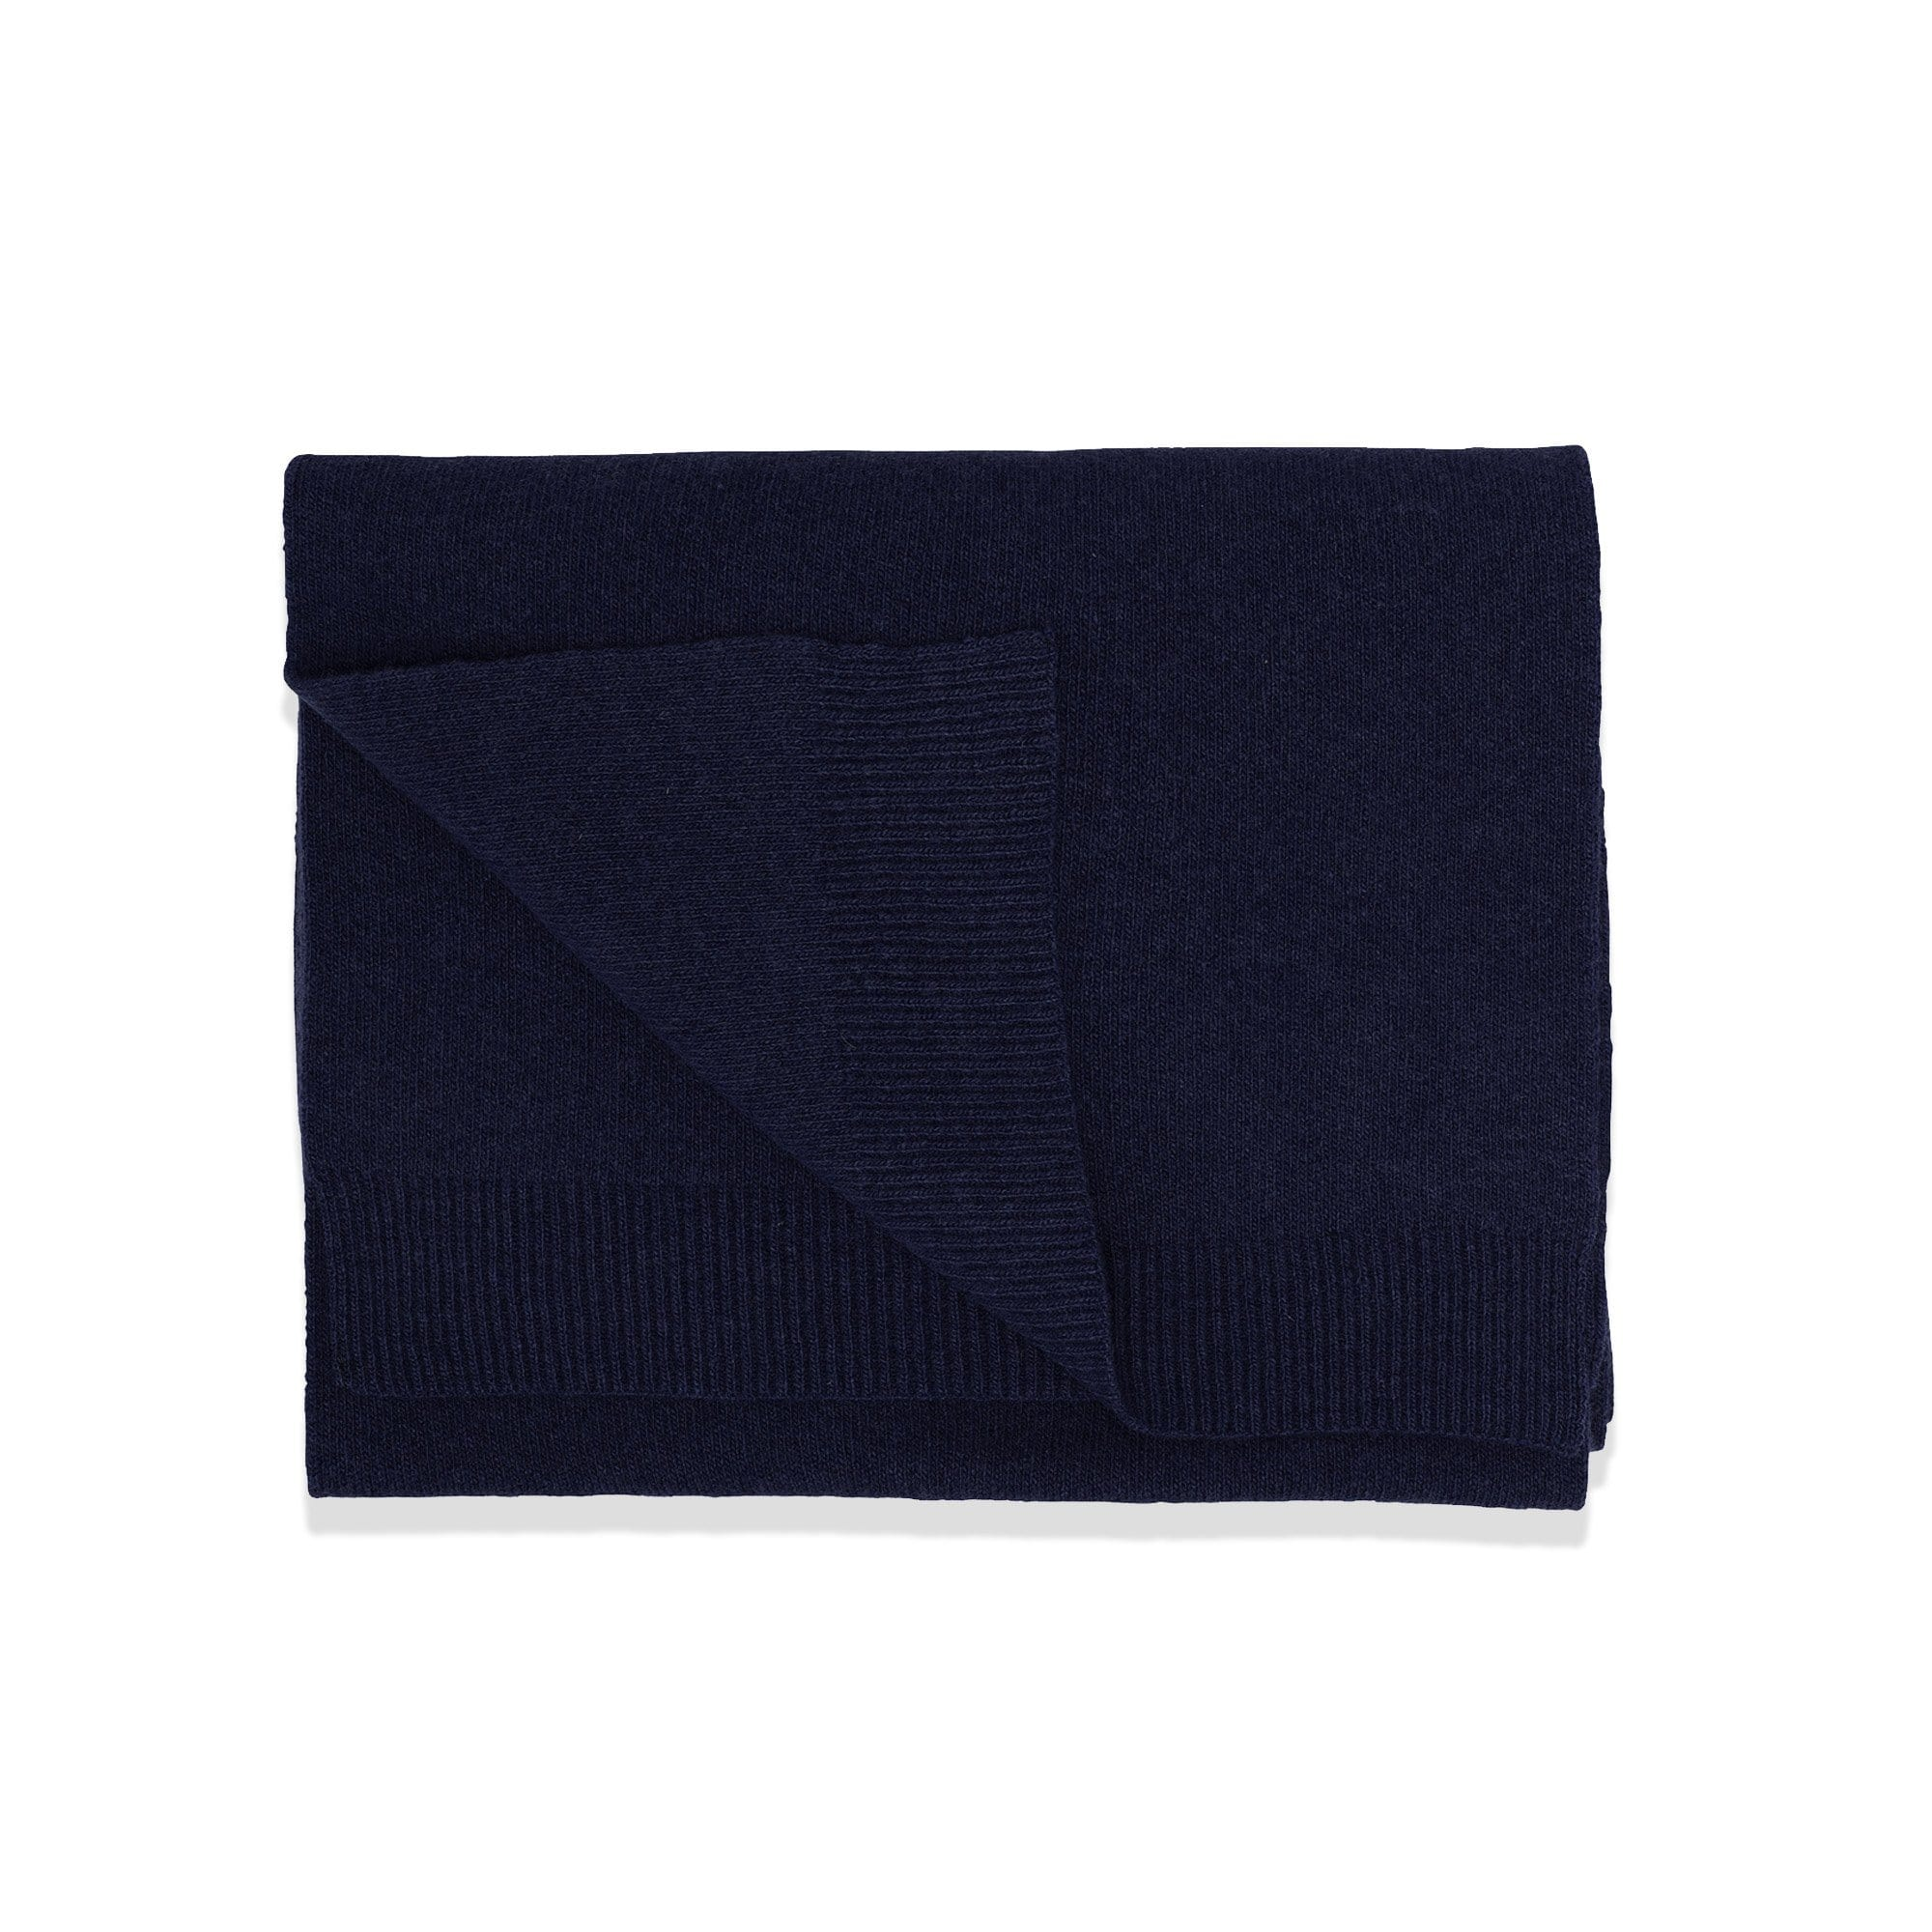 Colorful Standard Accessories Navy Merino Wool Scarf